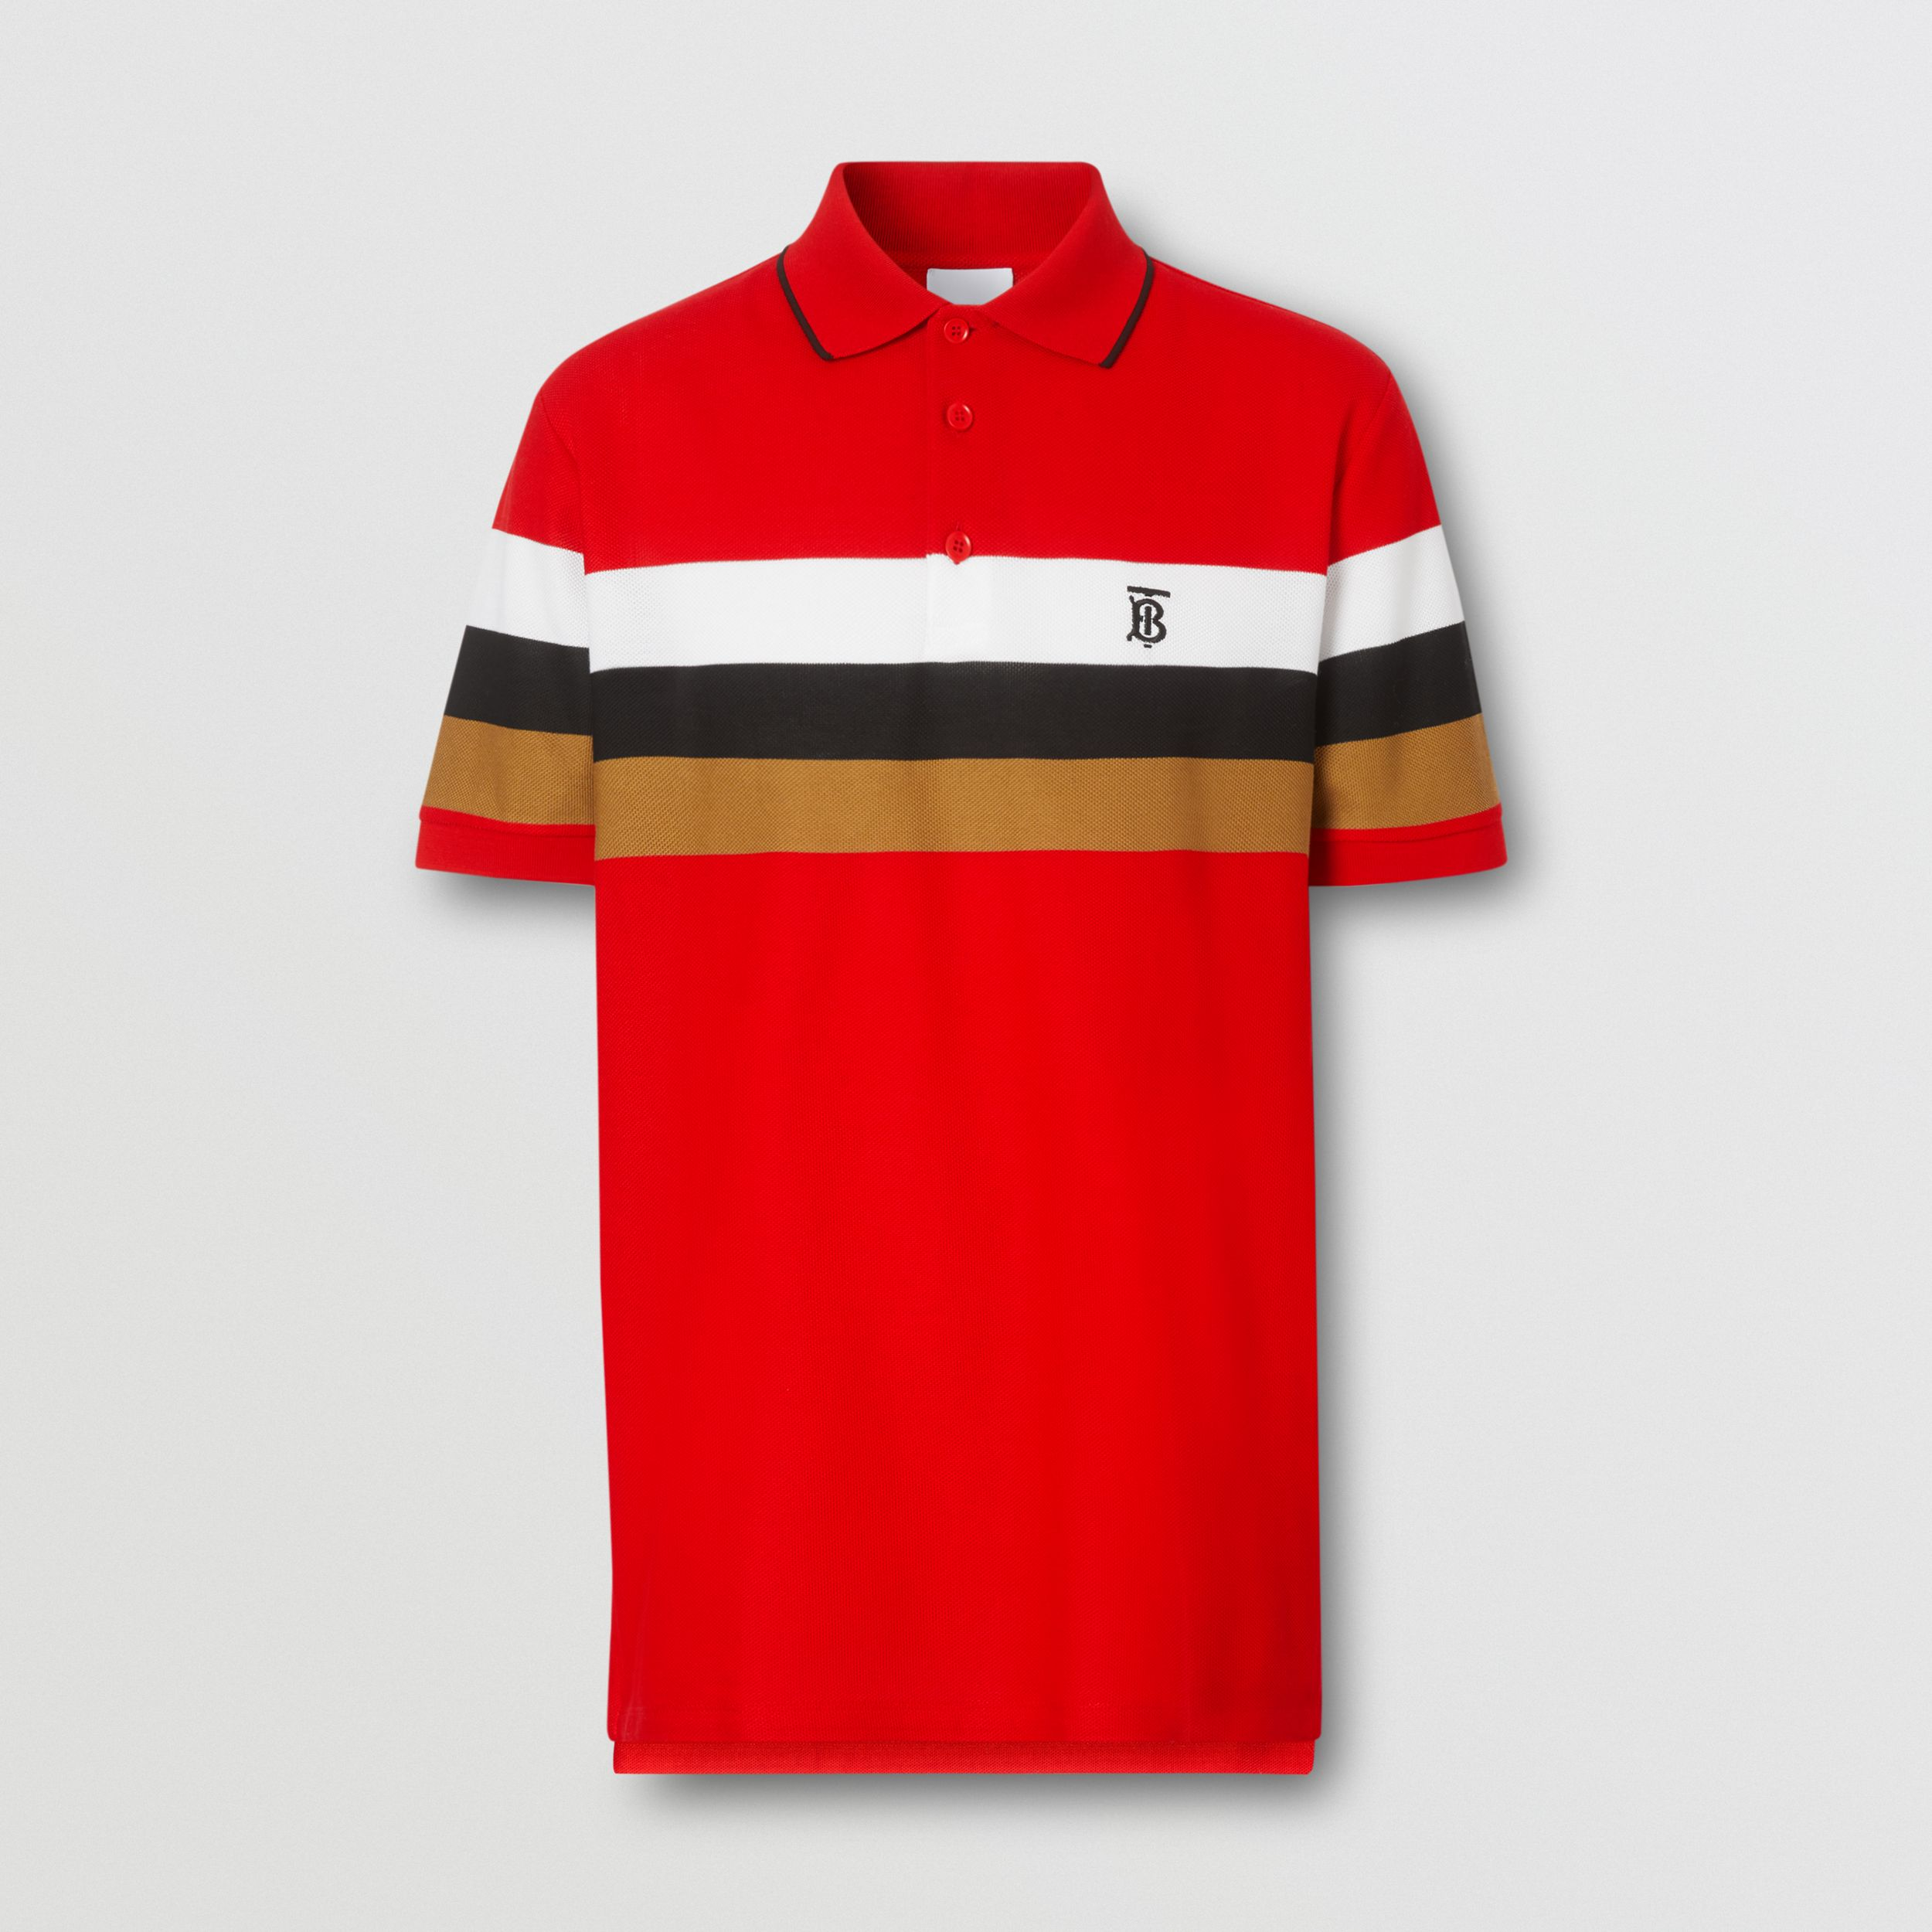 Monogram Motif Striped Cotton Polo Shirt in Bright Red - Men | Burberry - 4